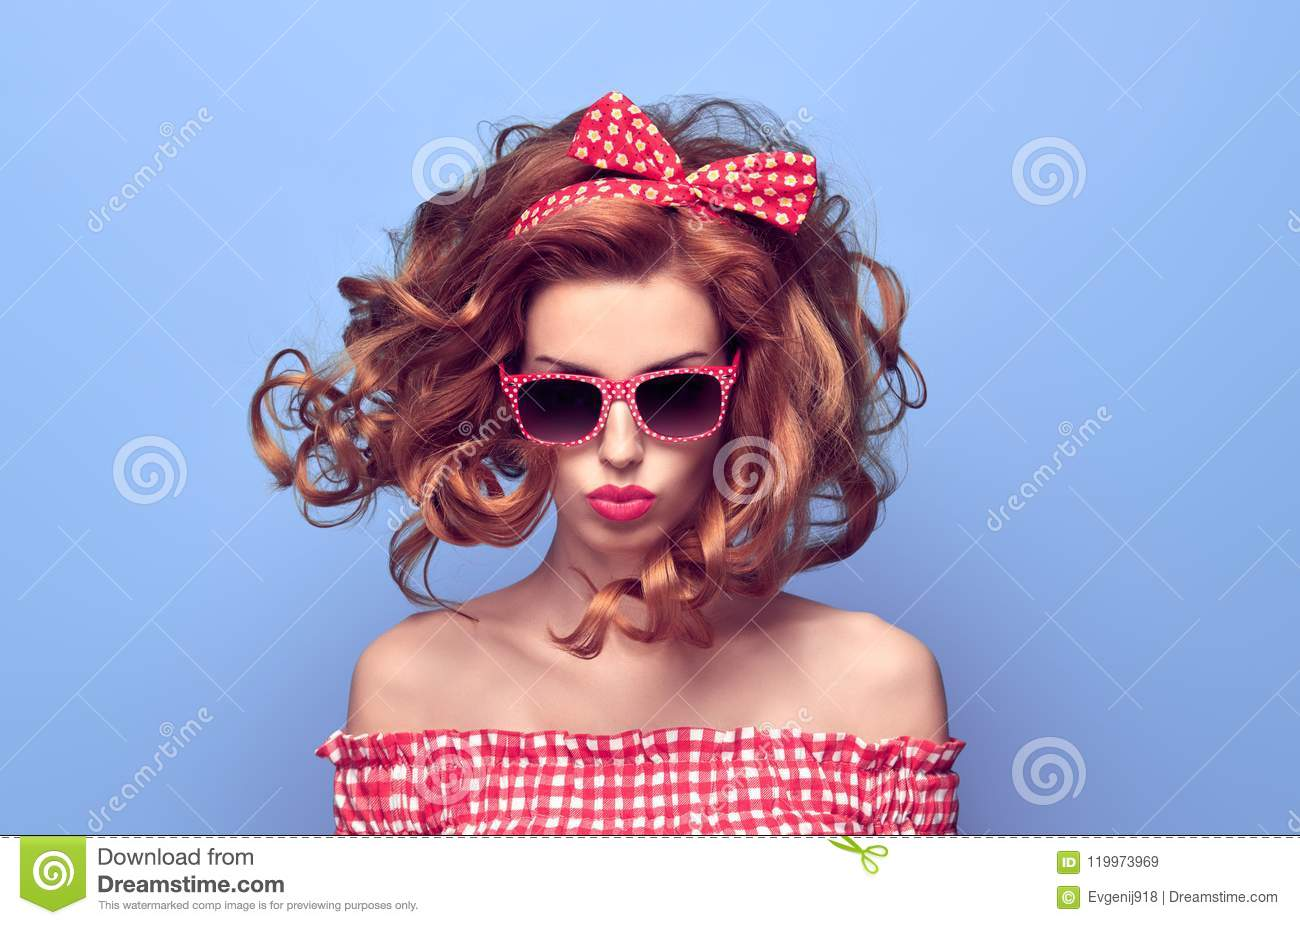 2980ad83489f PinUp Portrait Beauty Redhead Girl with Kiss Face Expression. Stylish Curly  hairstyle. Fashion Playful Woman in Pink Summer Bardot Dress